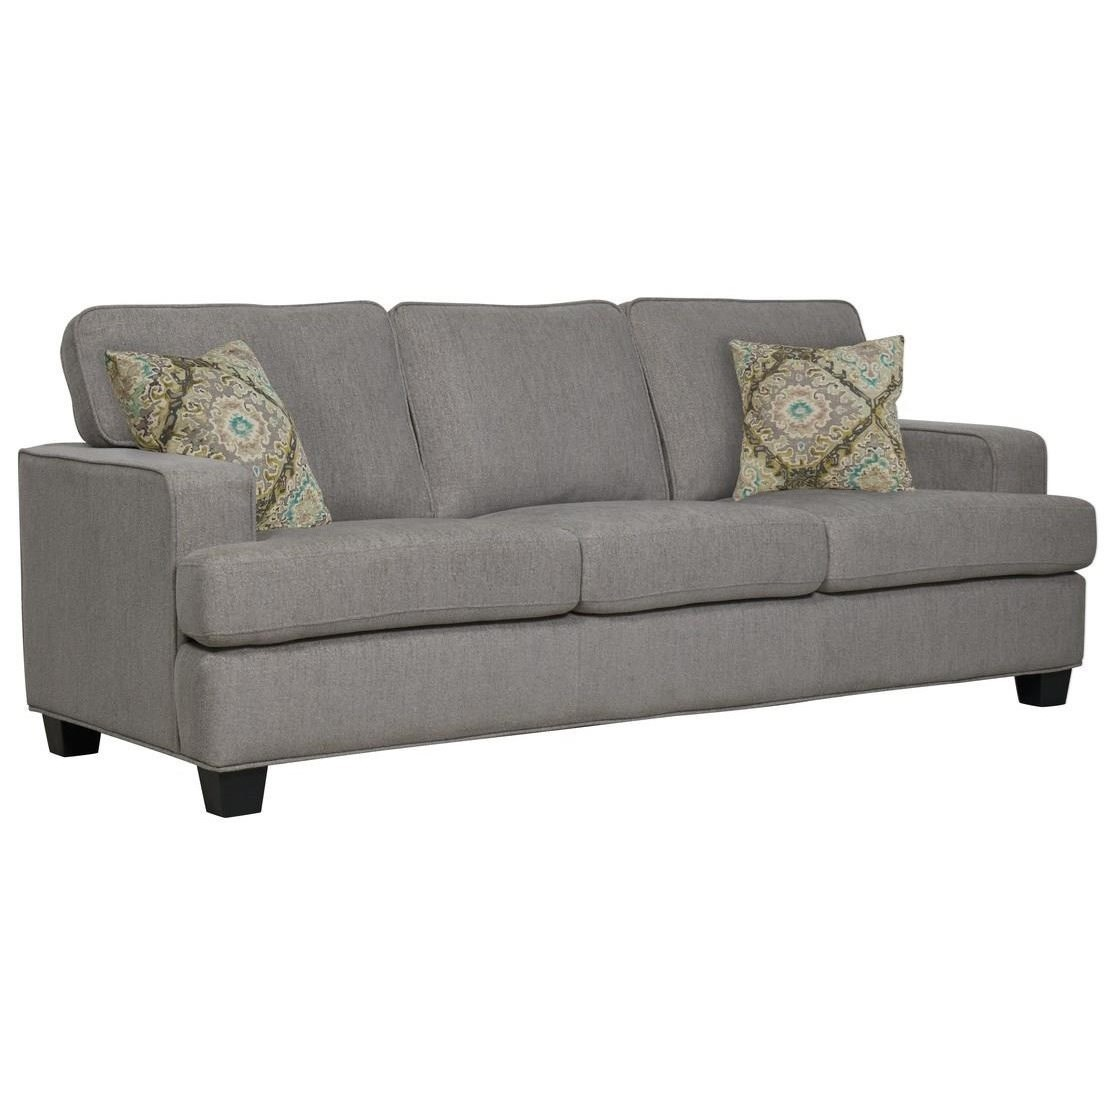 Sofa W/2 Accent Pillows